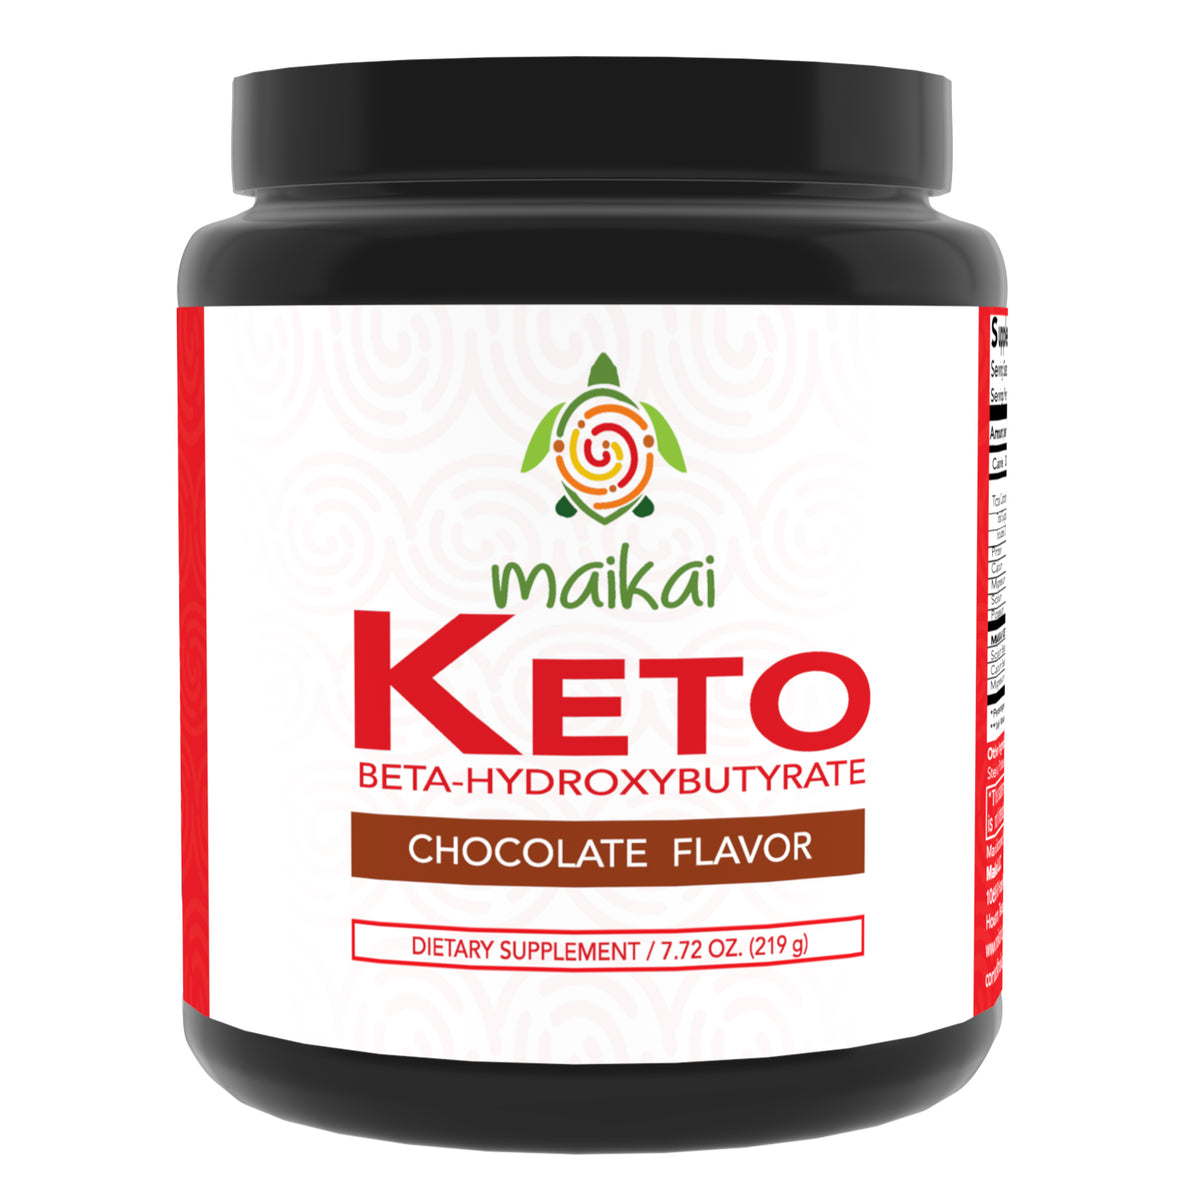 Keto Powder - Exogenous Ketones Supplement (BHB) - Ideal for Ketosis Diet, Fat Burning, Performance & Focus